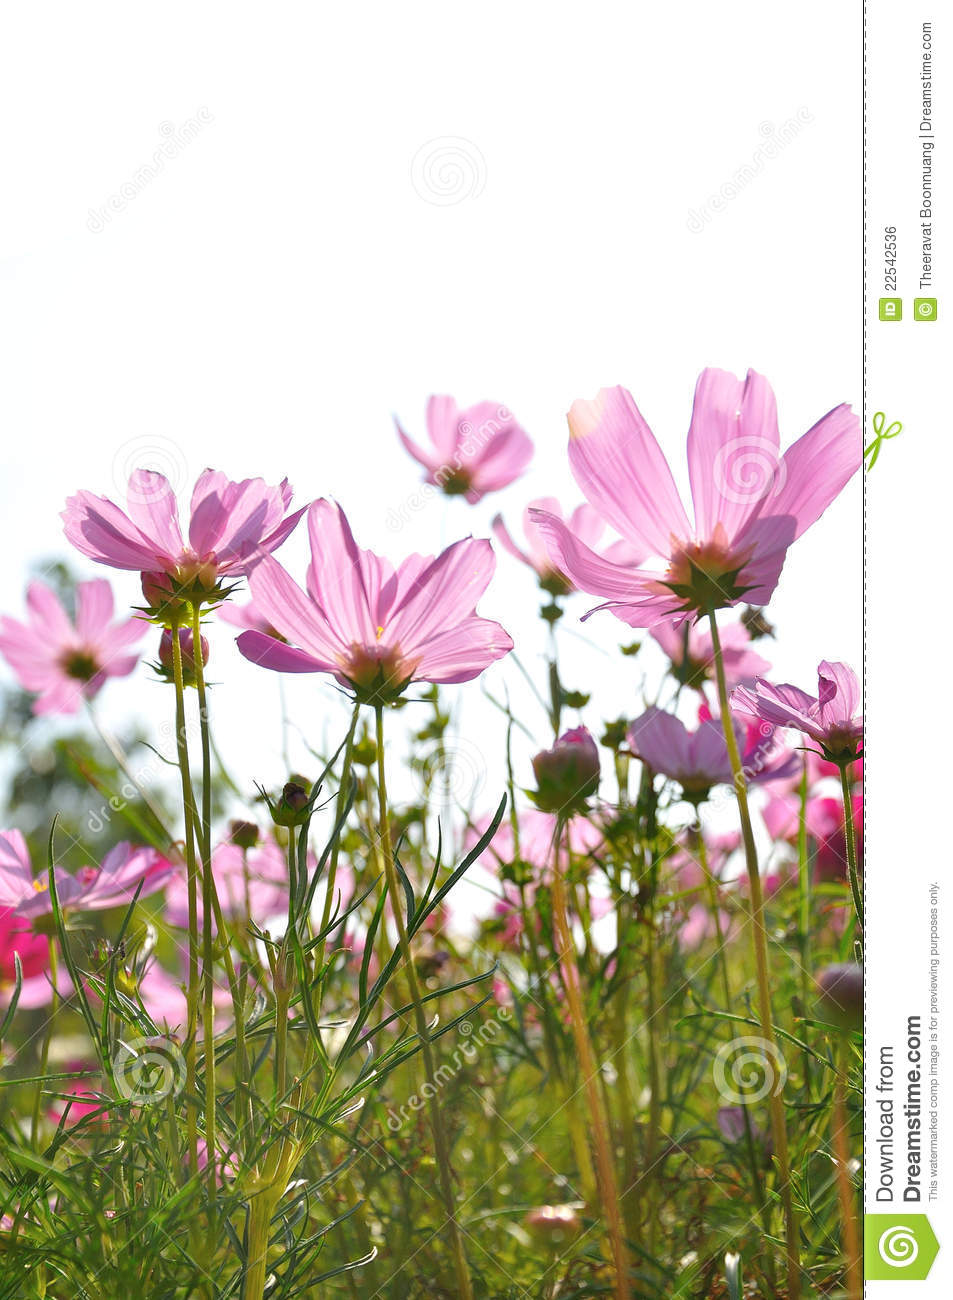 Colorful Daisies In Grass Field Royalty Free Stock Image ...